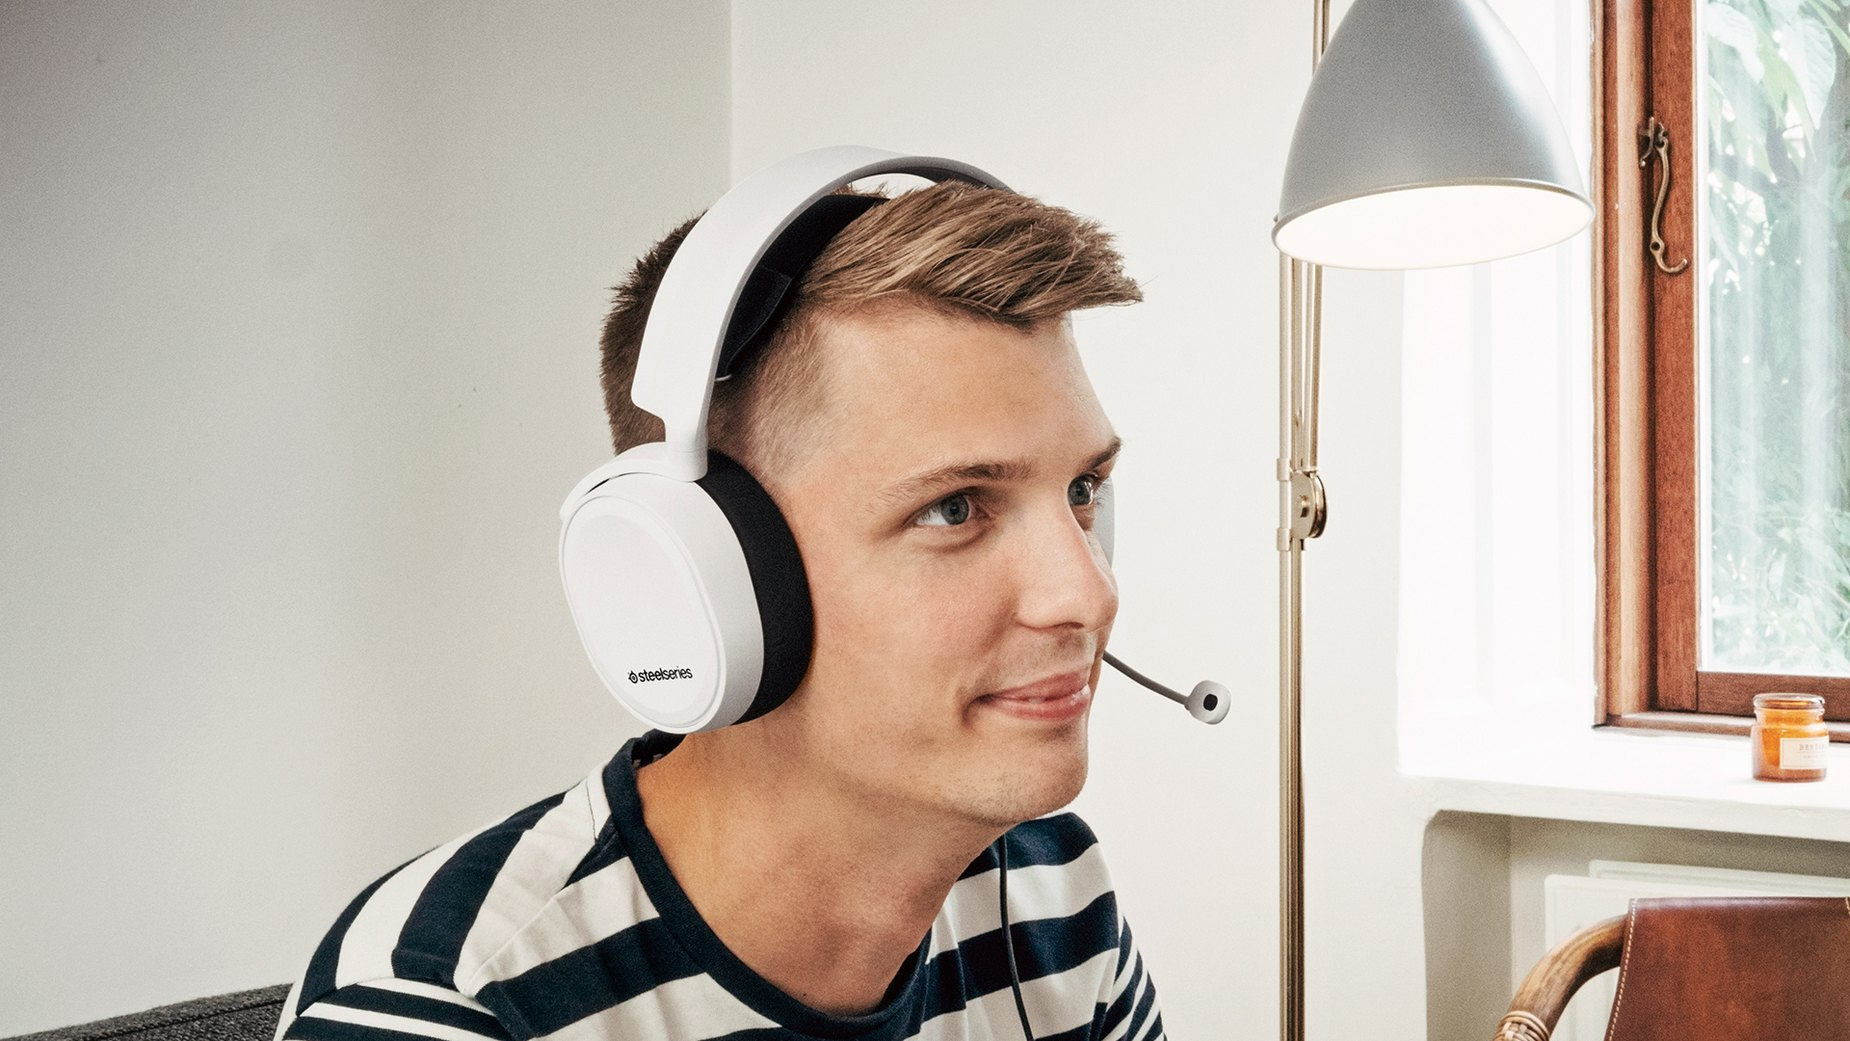 Un gamer enthousiaste portant l'Arctis 3 - Casque audio (blanc)